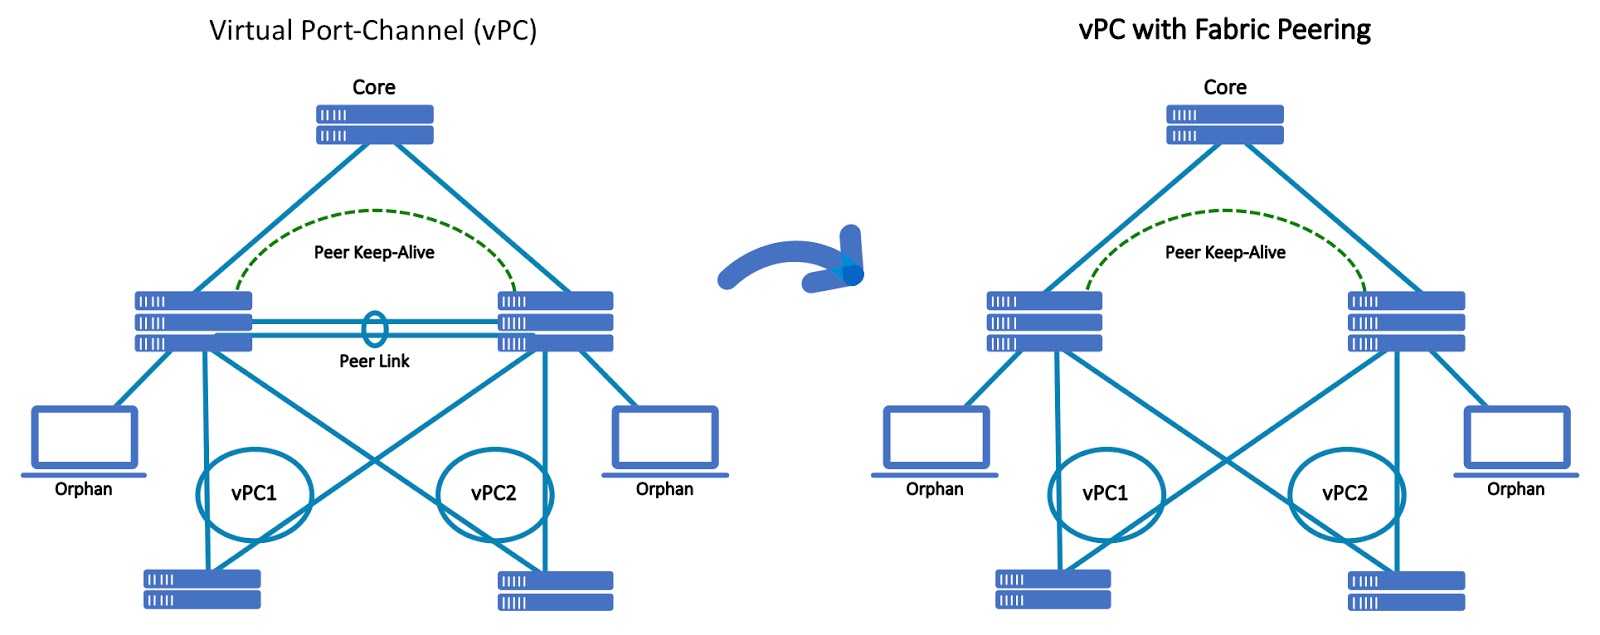 Change is the only constant – vPC with Fabric Peering for